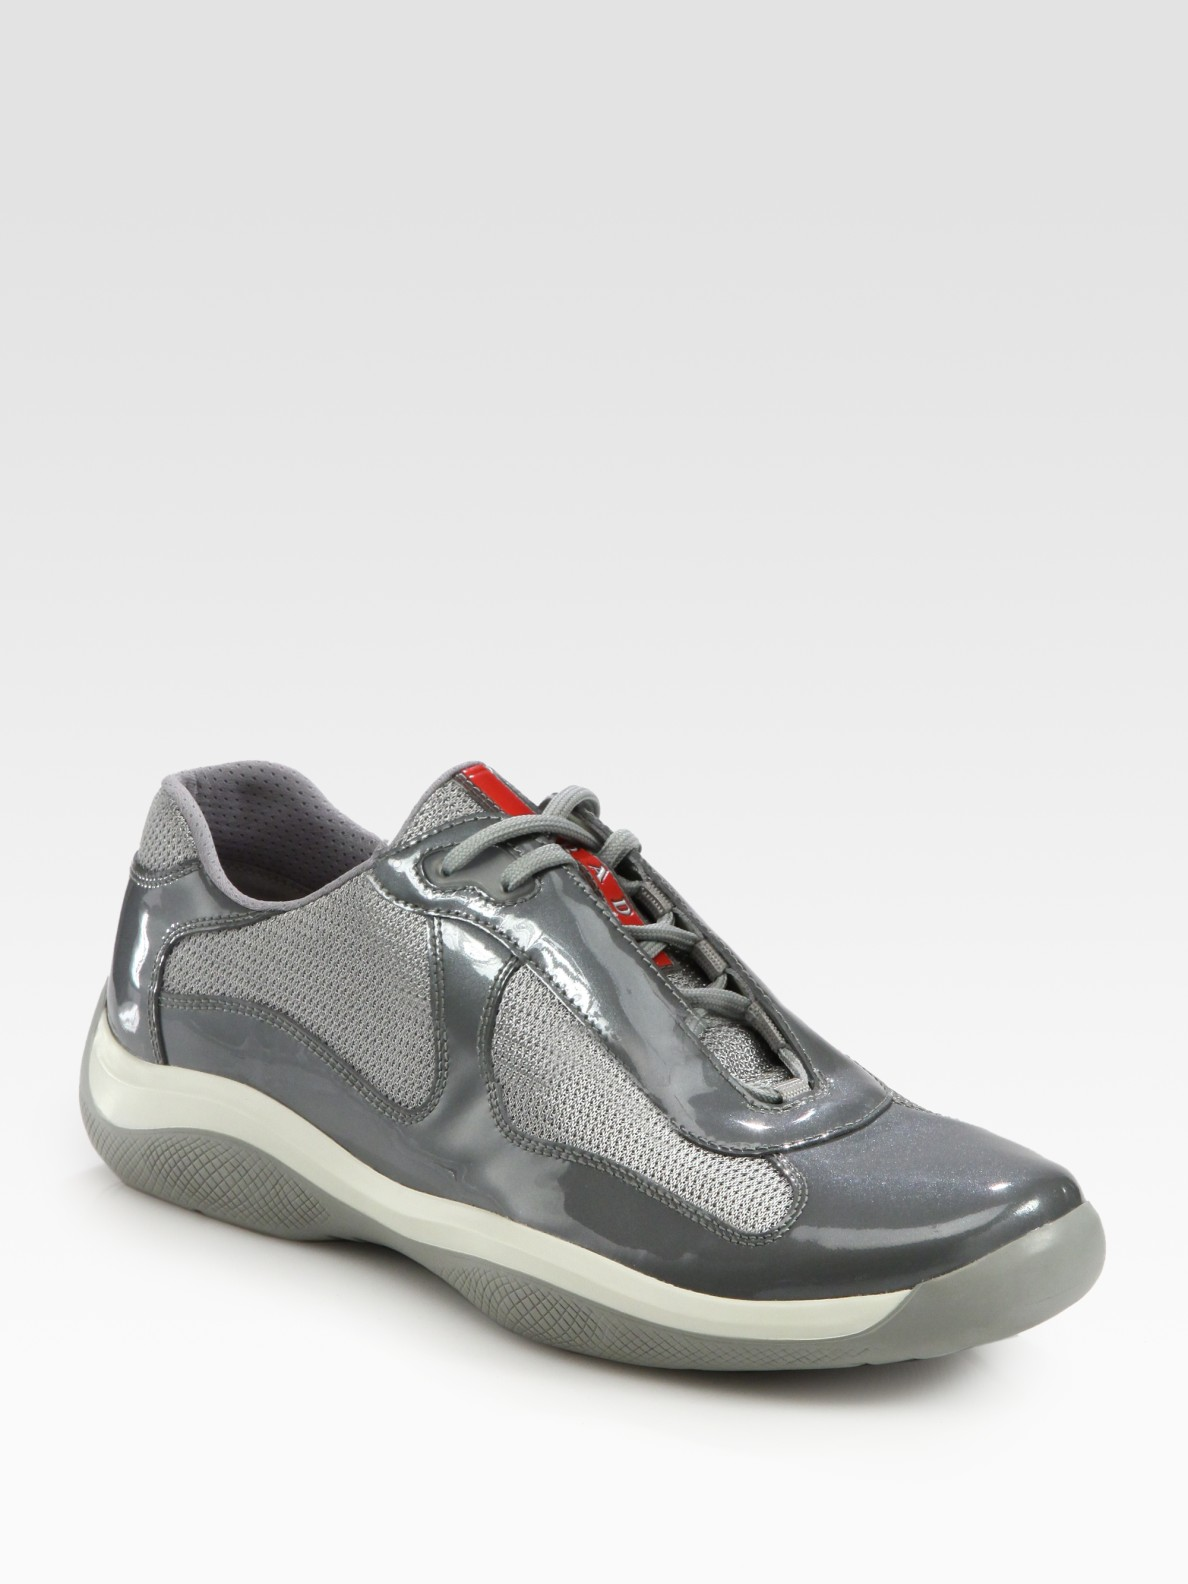 Prada Com Mens Shoes